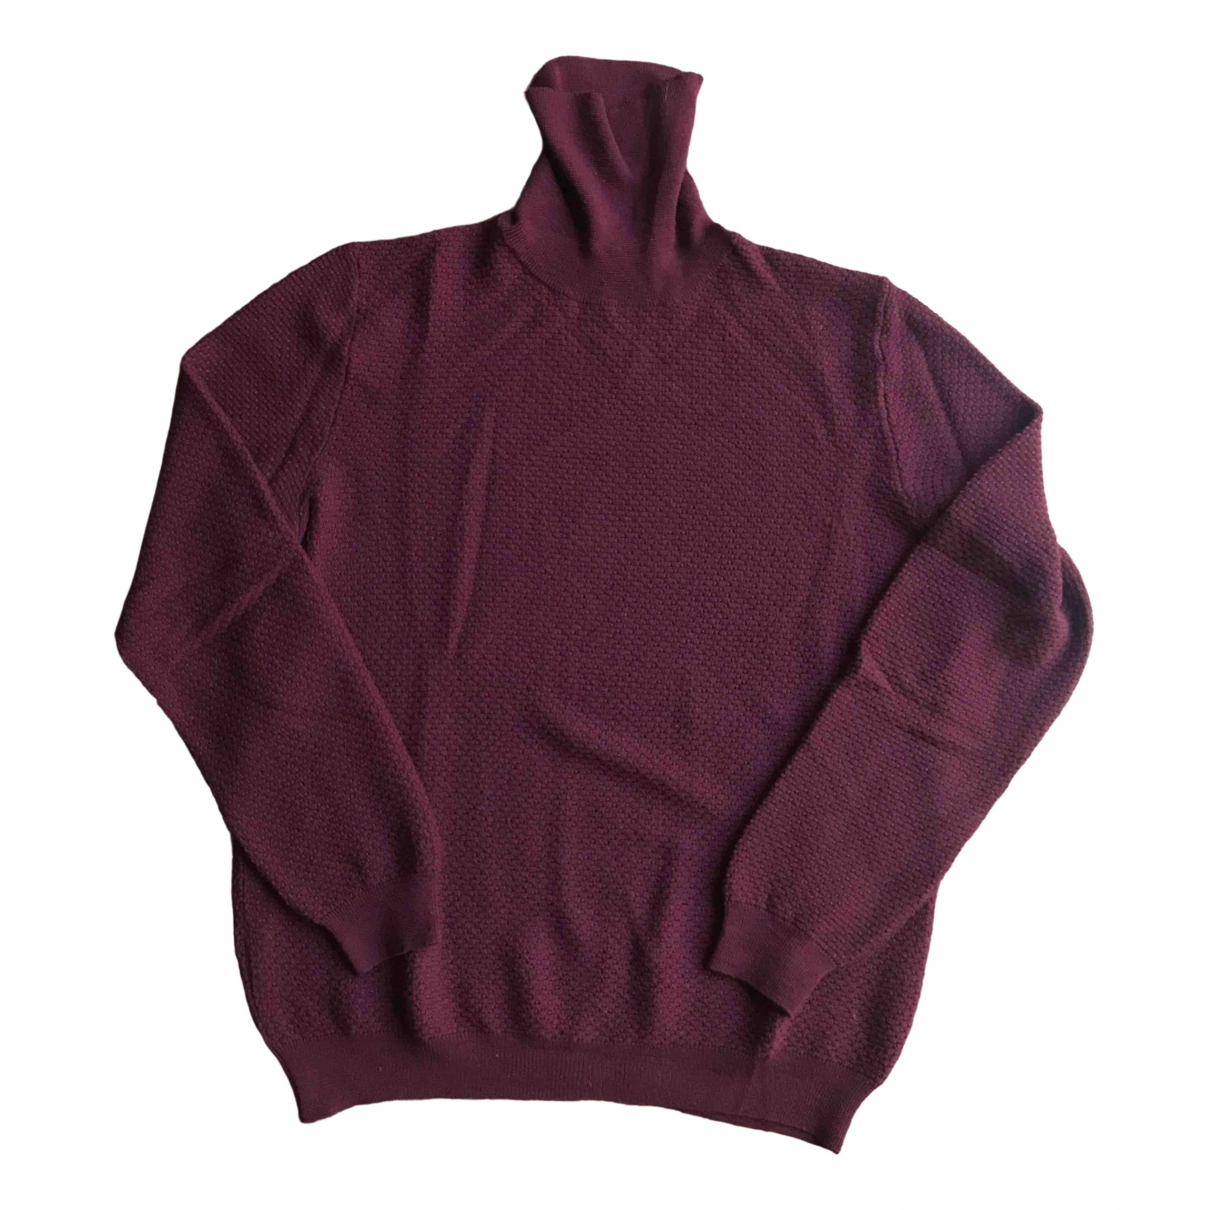 Zanone \N Burgundy Wool Knitwear & Sweatshirts for Men 54 IT